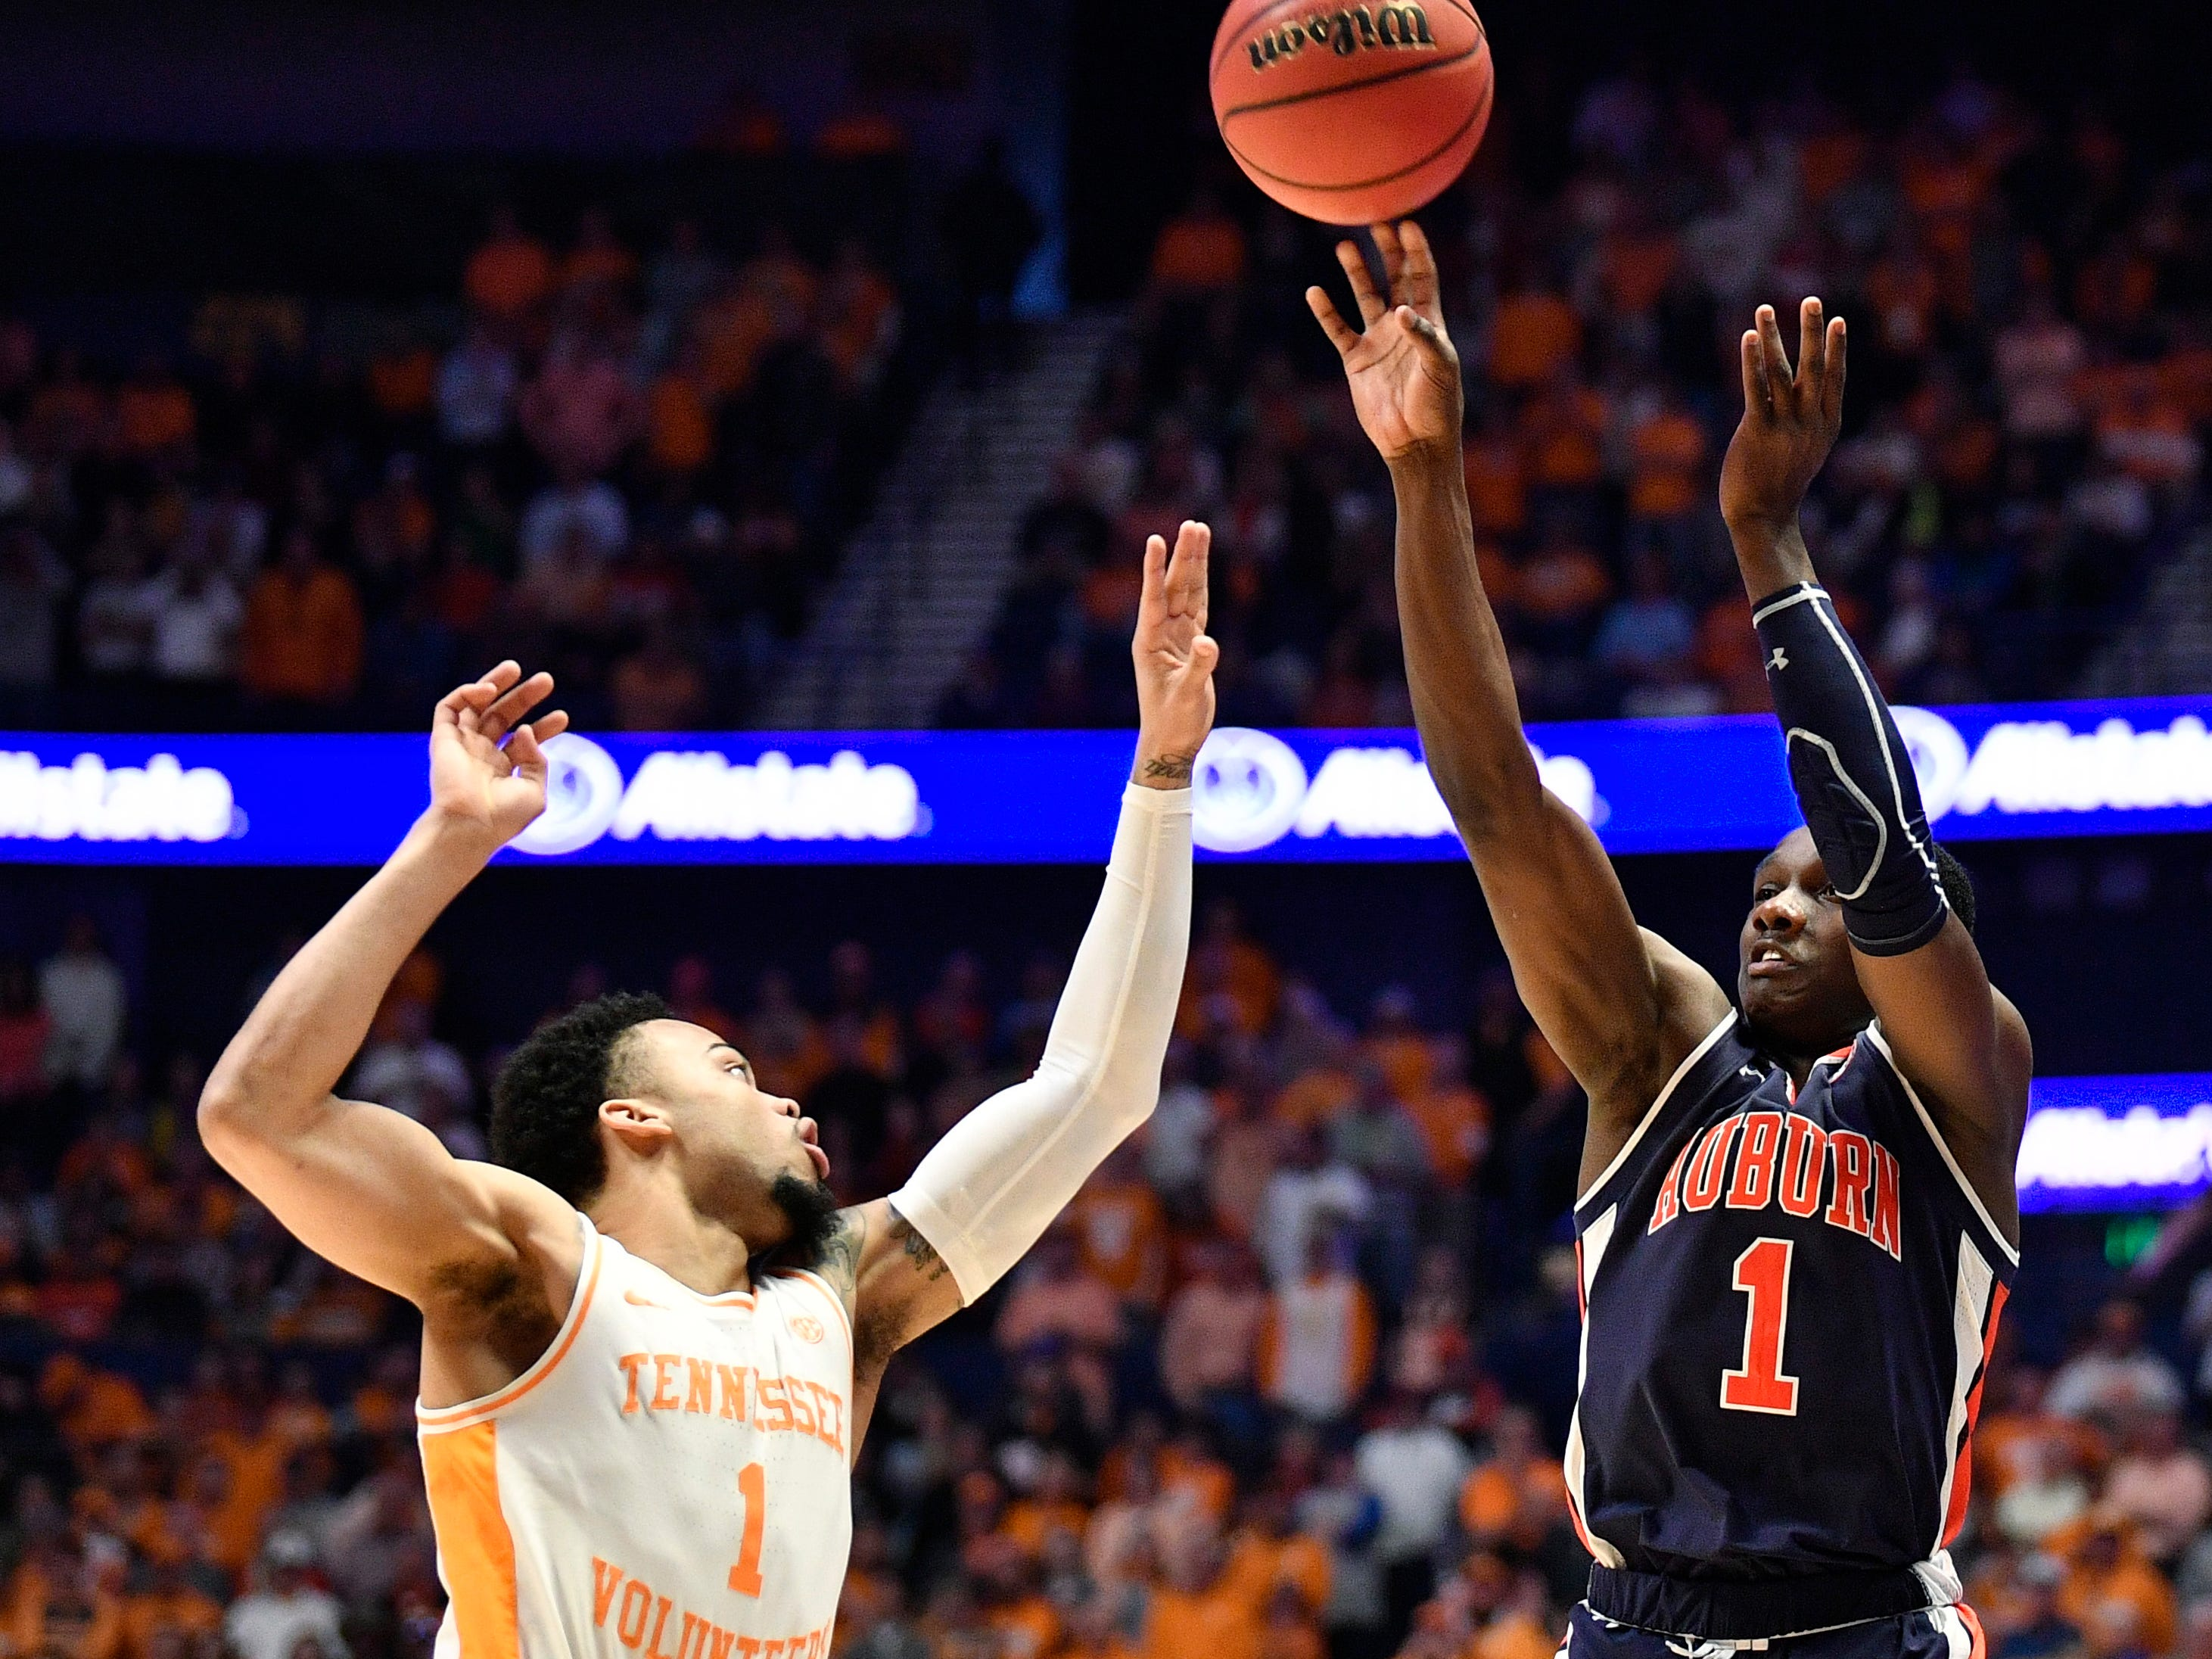 Auburn guard Jared Harper (1) shoots defended by Tennessee guard Lamonte Turner (1) during the first half of the SEC Men's Basketball Tournament championship game at Bridgestone Arena in Nashville, Tenn., Sunday, March 17, 2019.